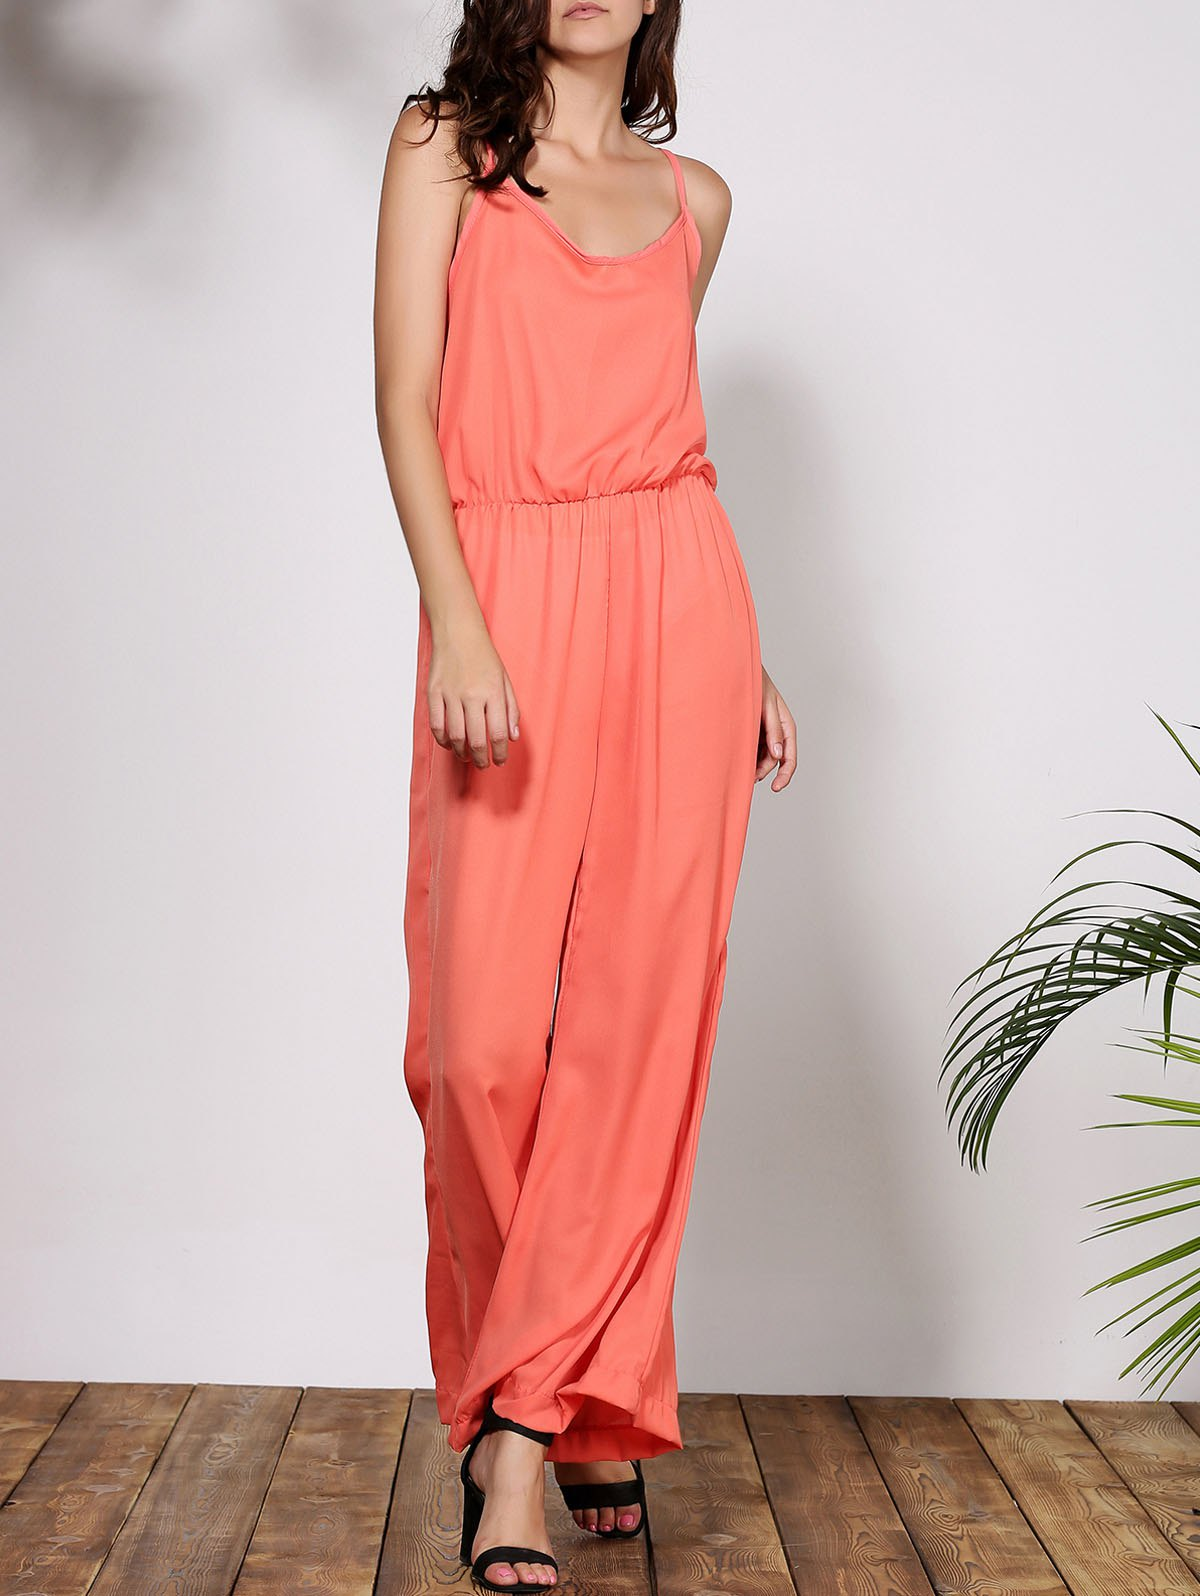 Stylish Solid Color Spaghetti Strap Women's Baggy Jumpsuit